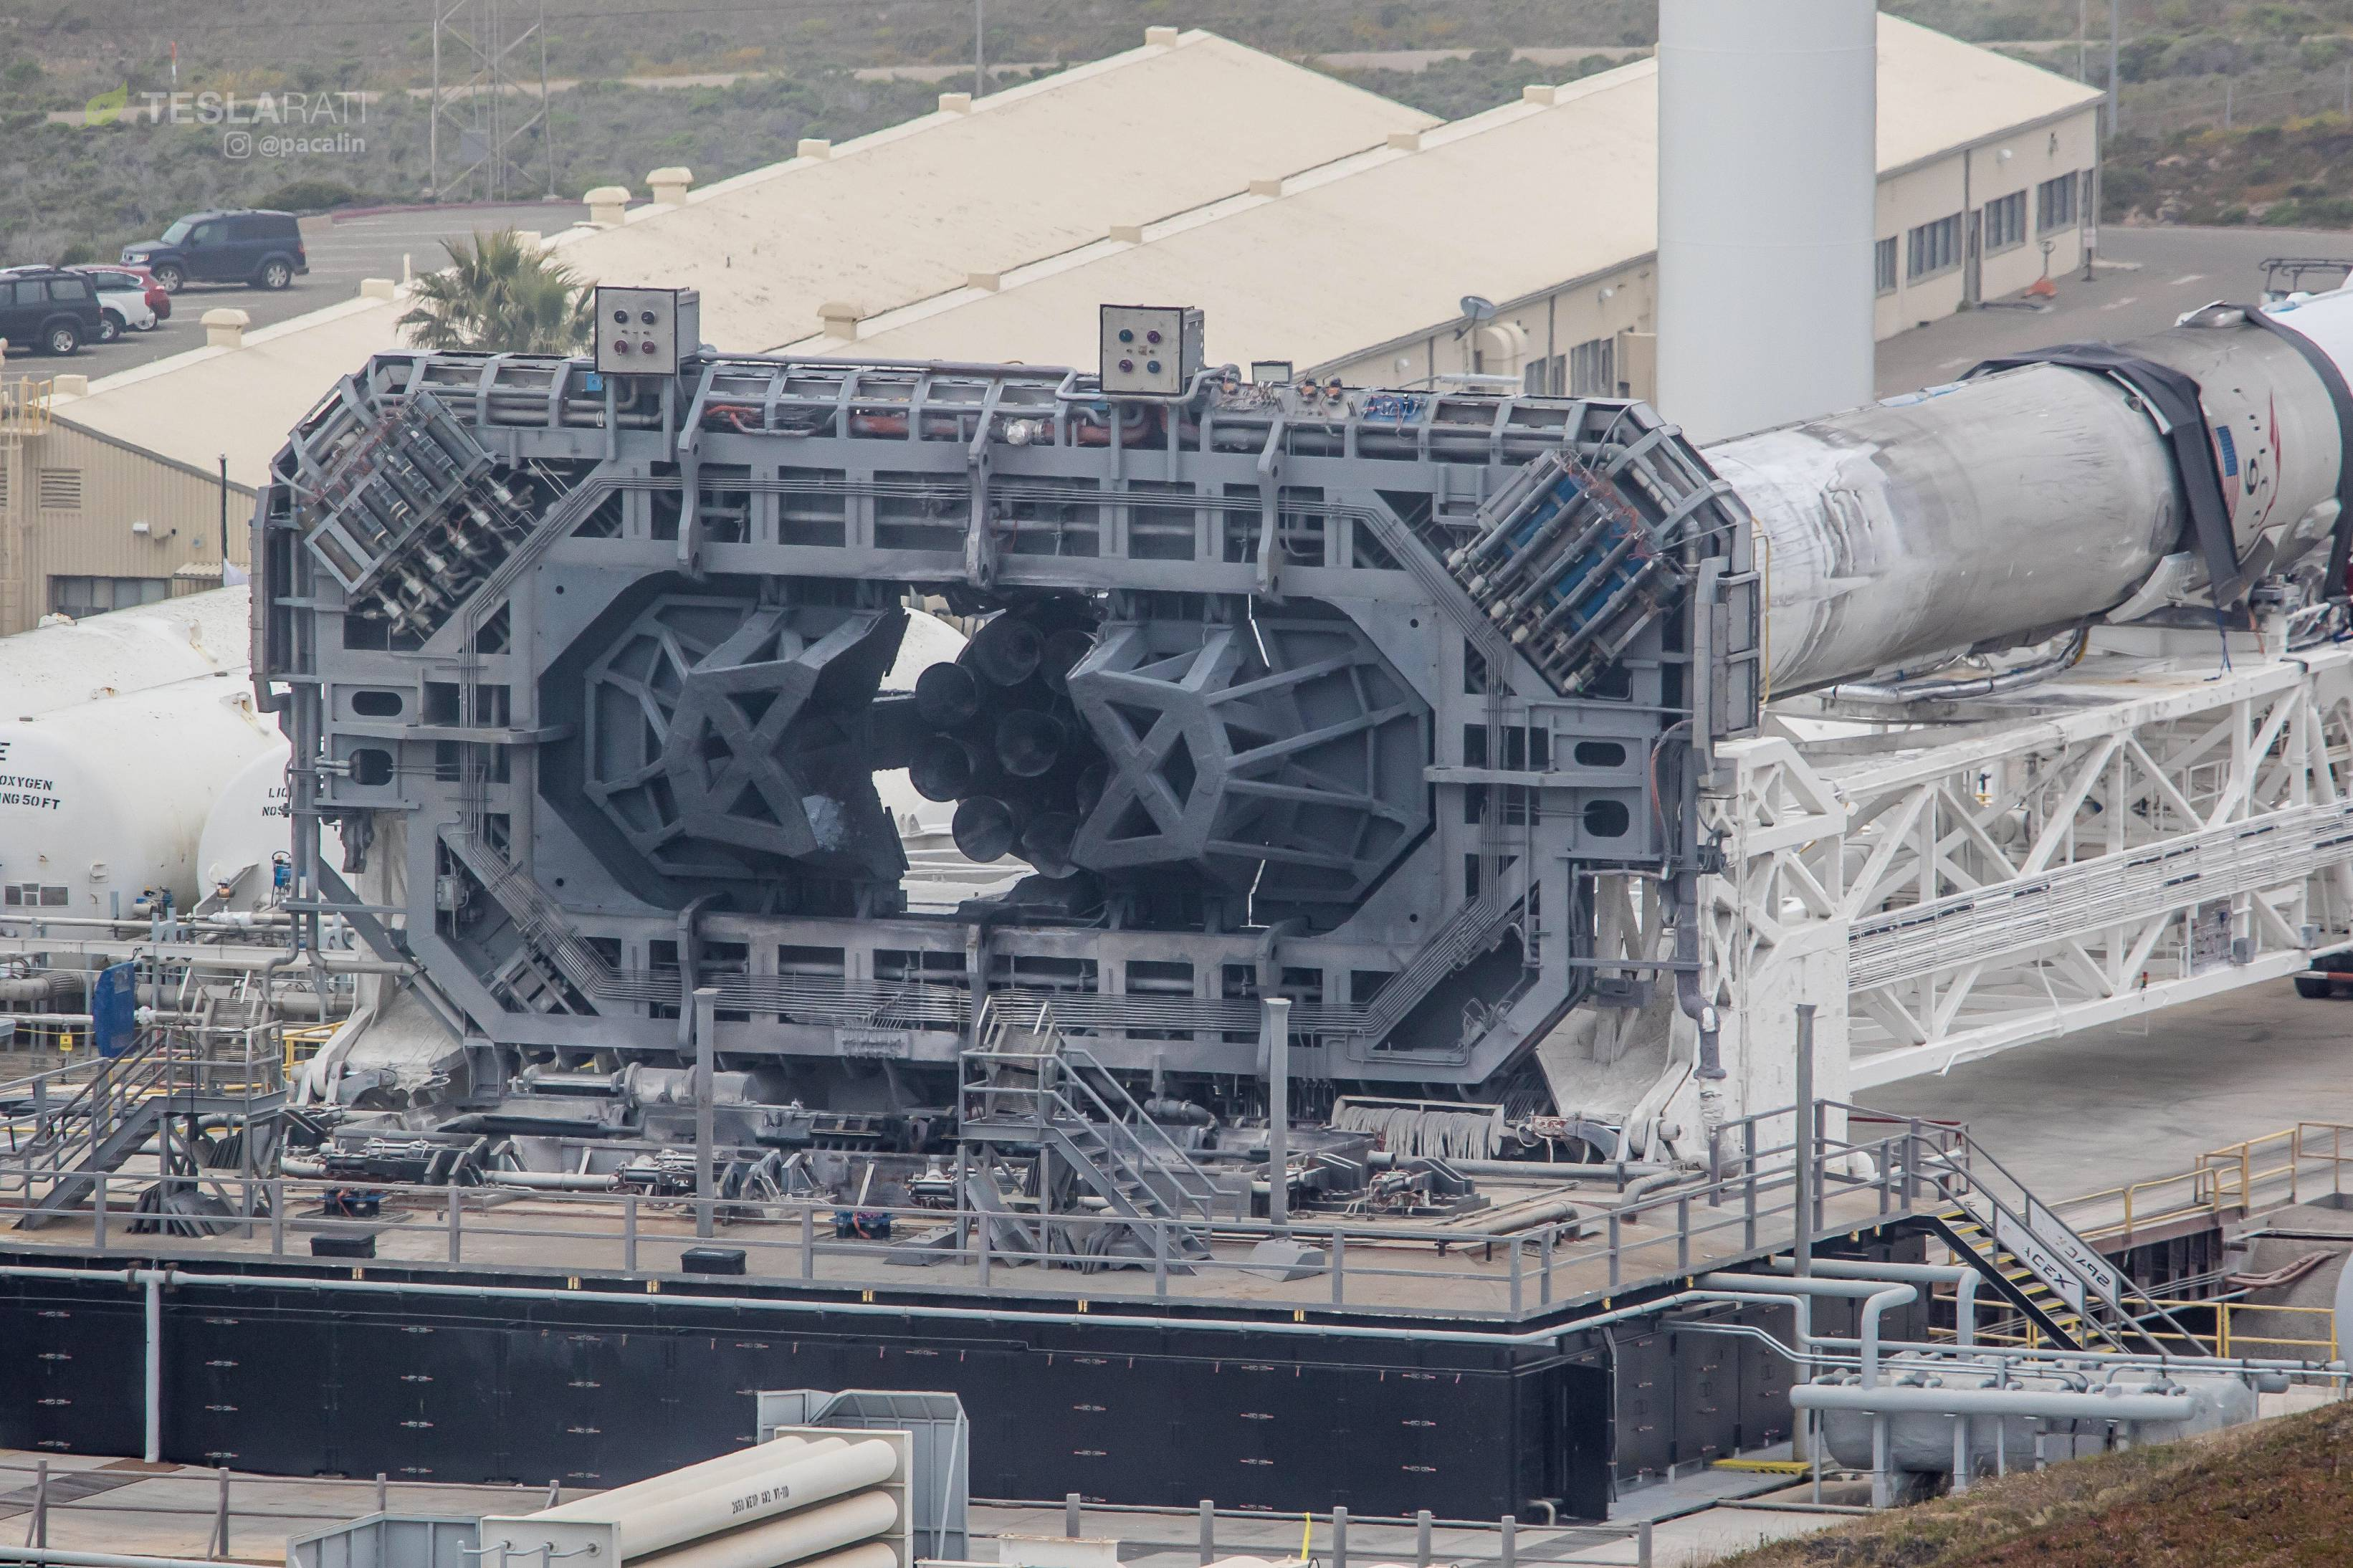 spacex may 19 - 1024×682